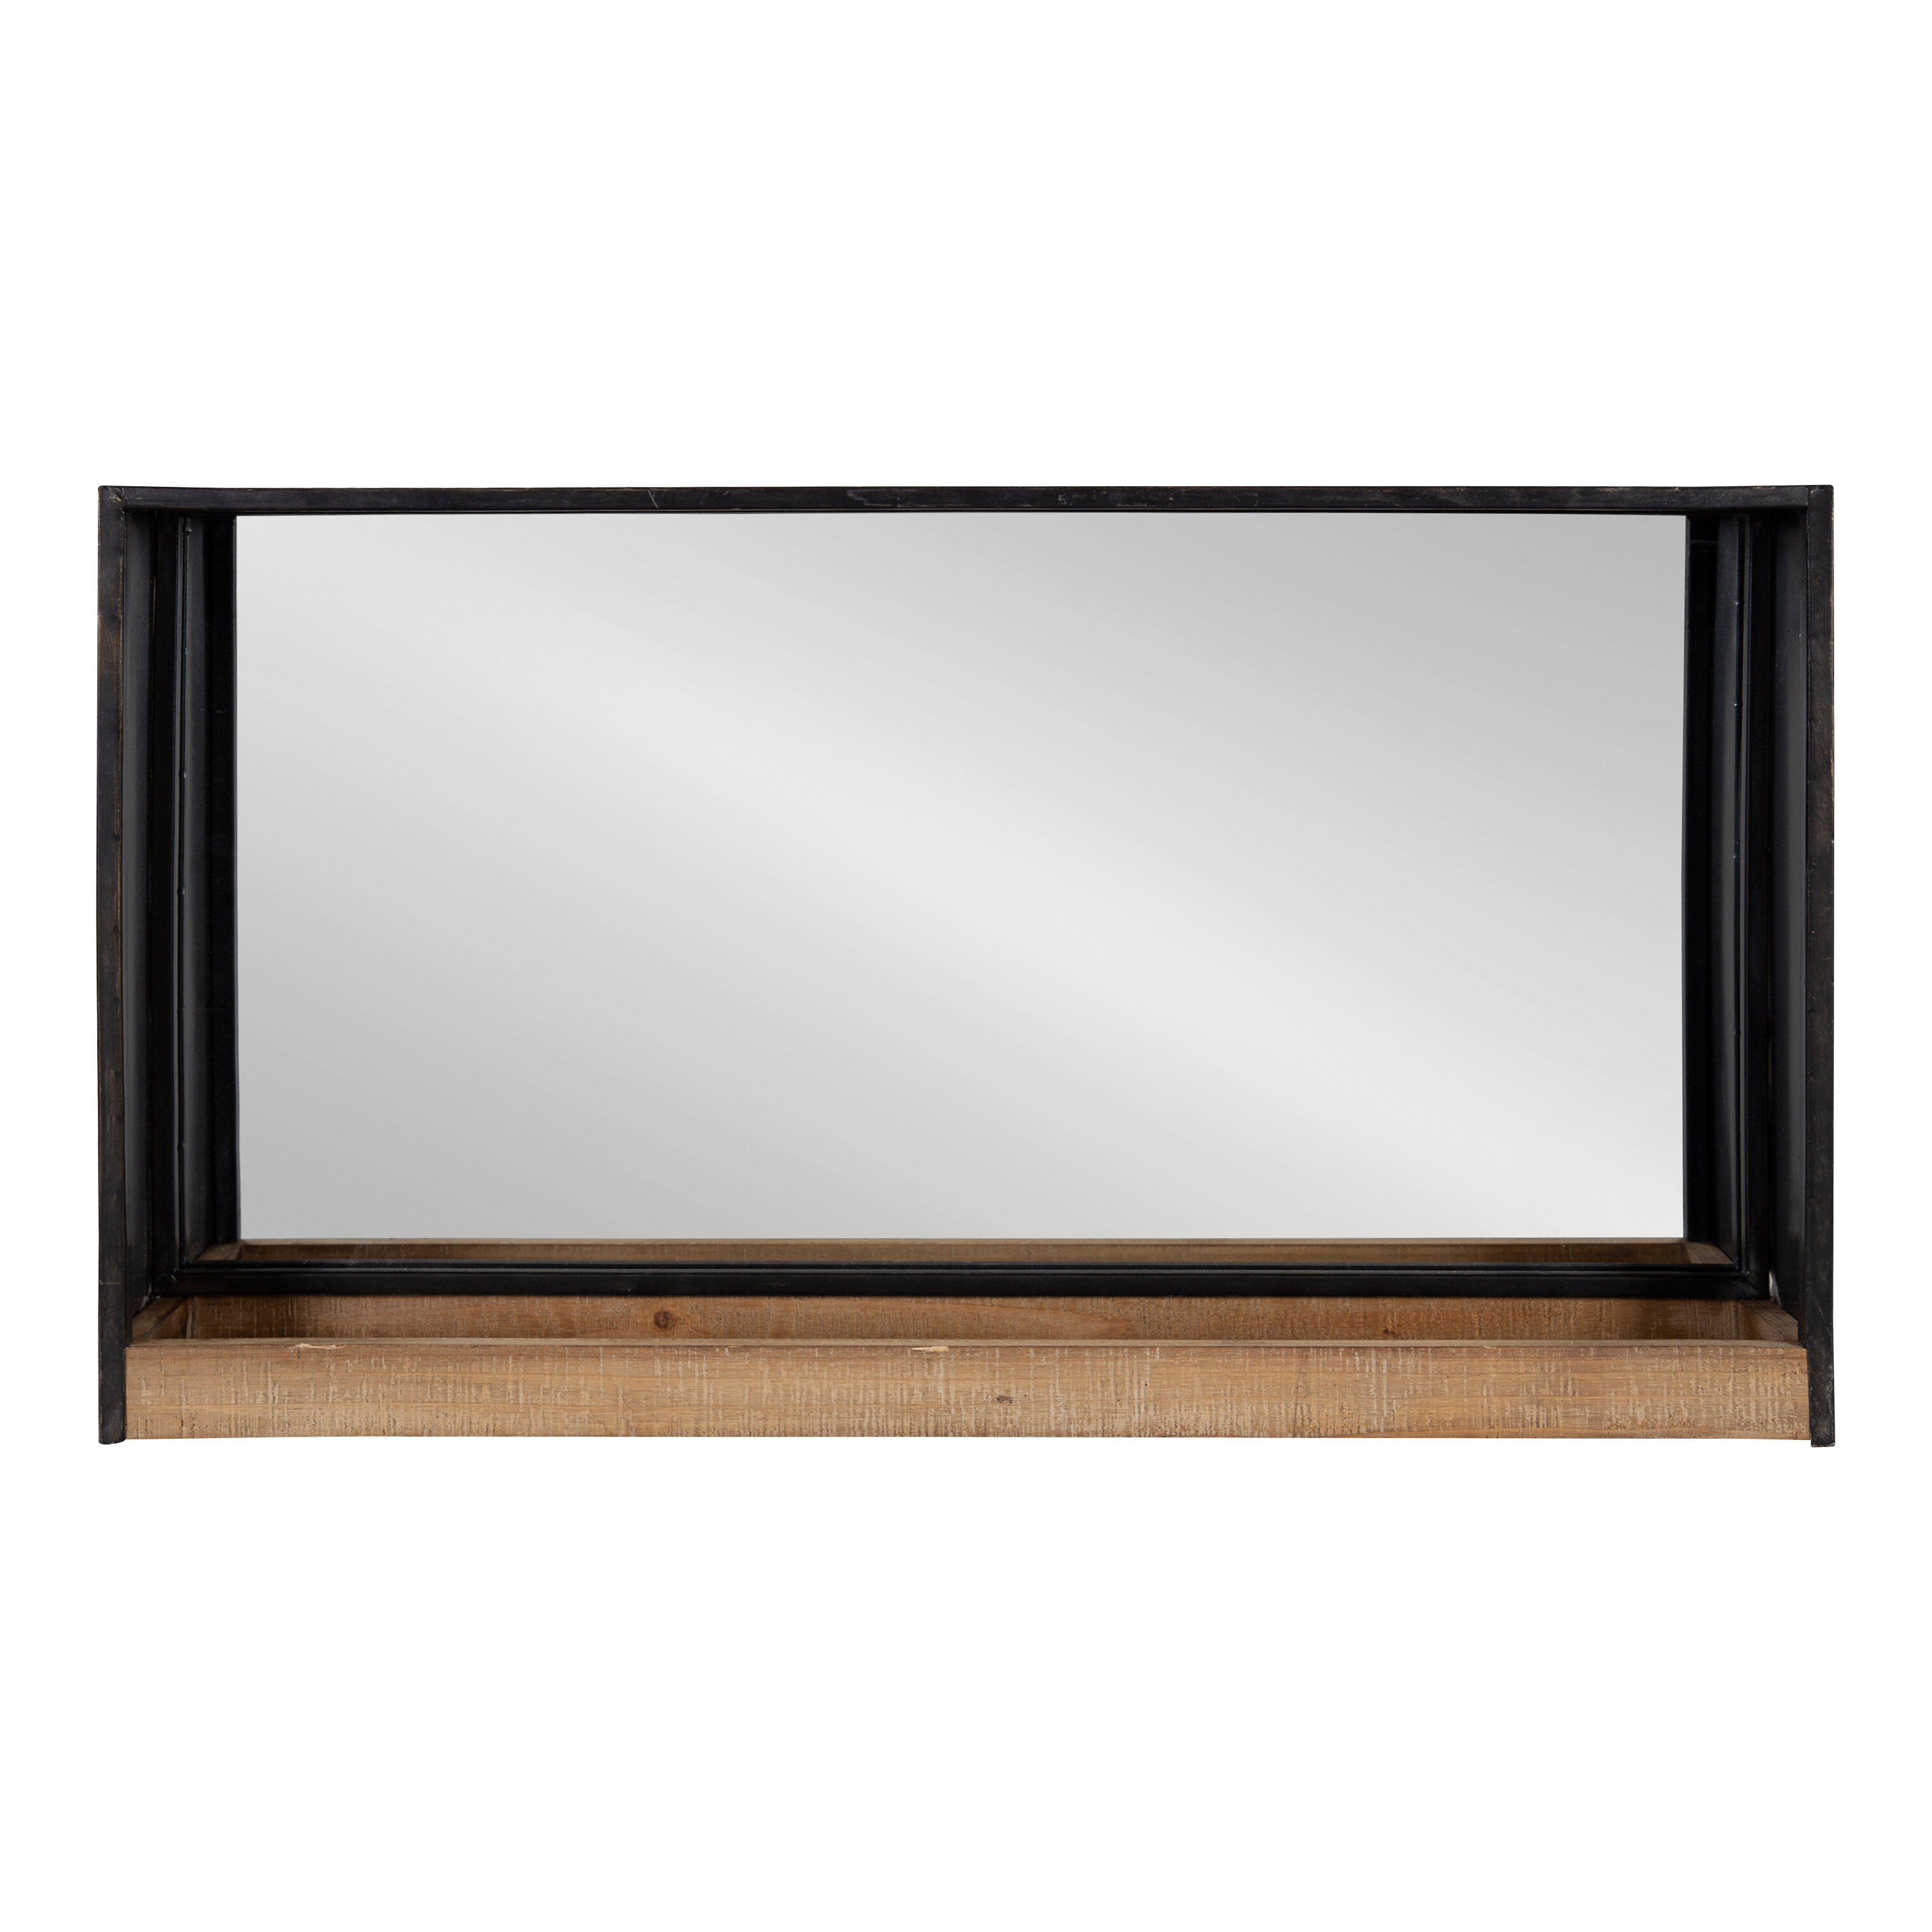 Coelho Casual Modern Beveled With Shelf Accent Mirror For Most Current Northcutt Accent Mirrors (Gallery 17 of 20)